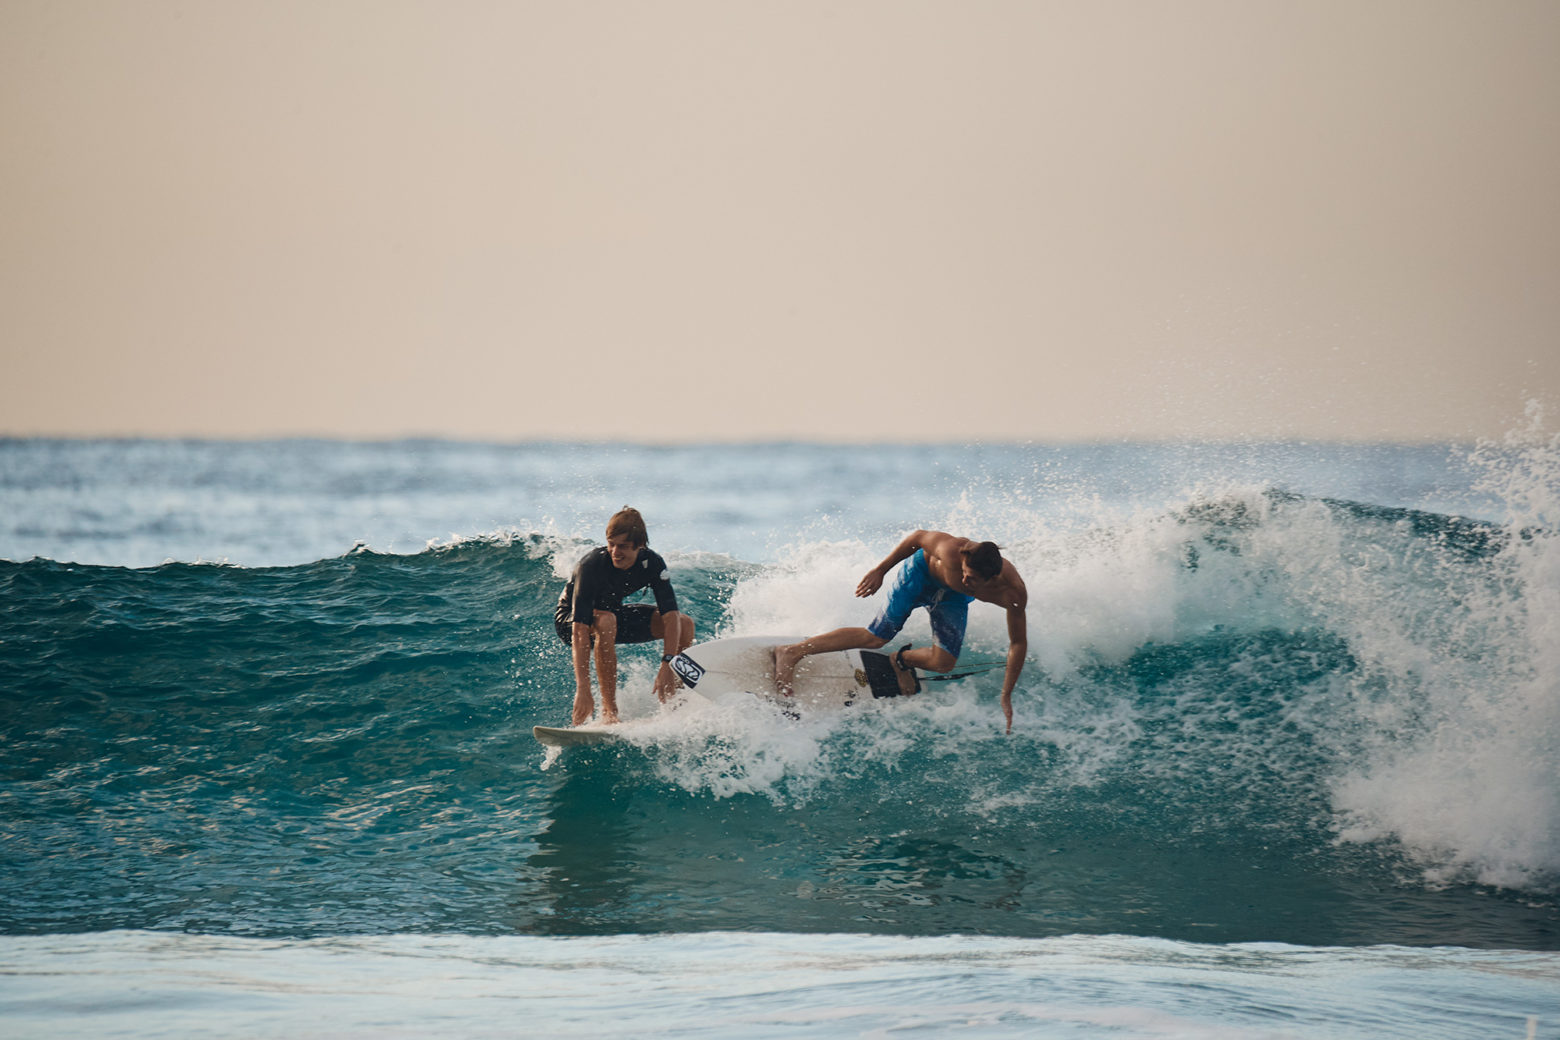 Surf etiquette at Bondi is atrocious. I am tired of fixing my boards!